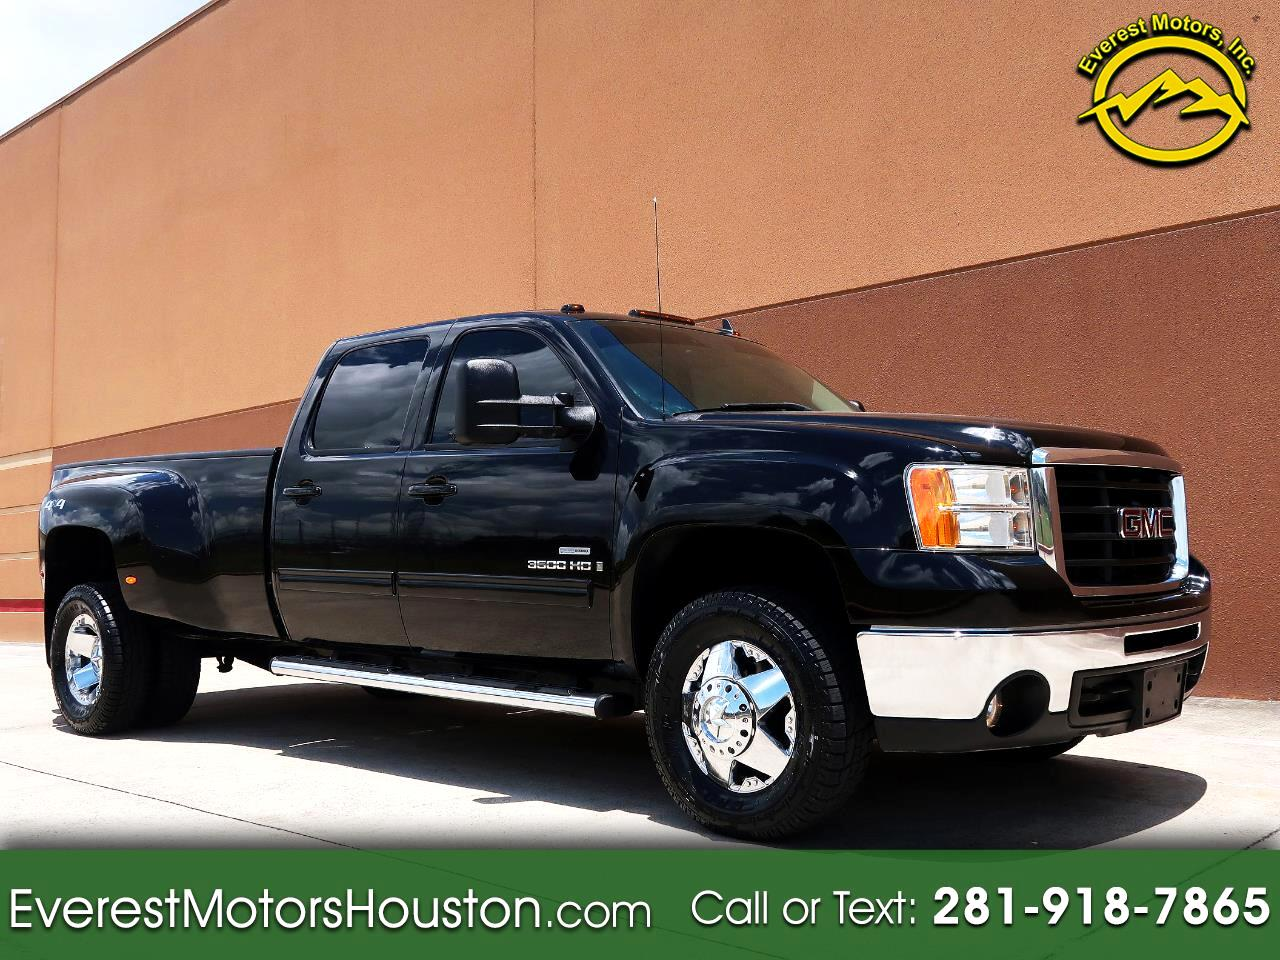 2009 GMC Sierra 3500HD SLT Crew Cab DRW 4X4 Long Bed